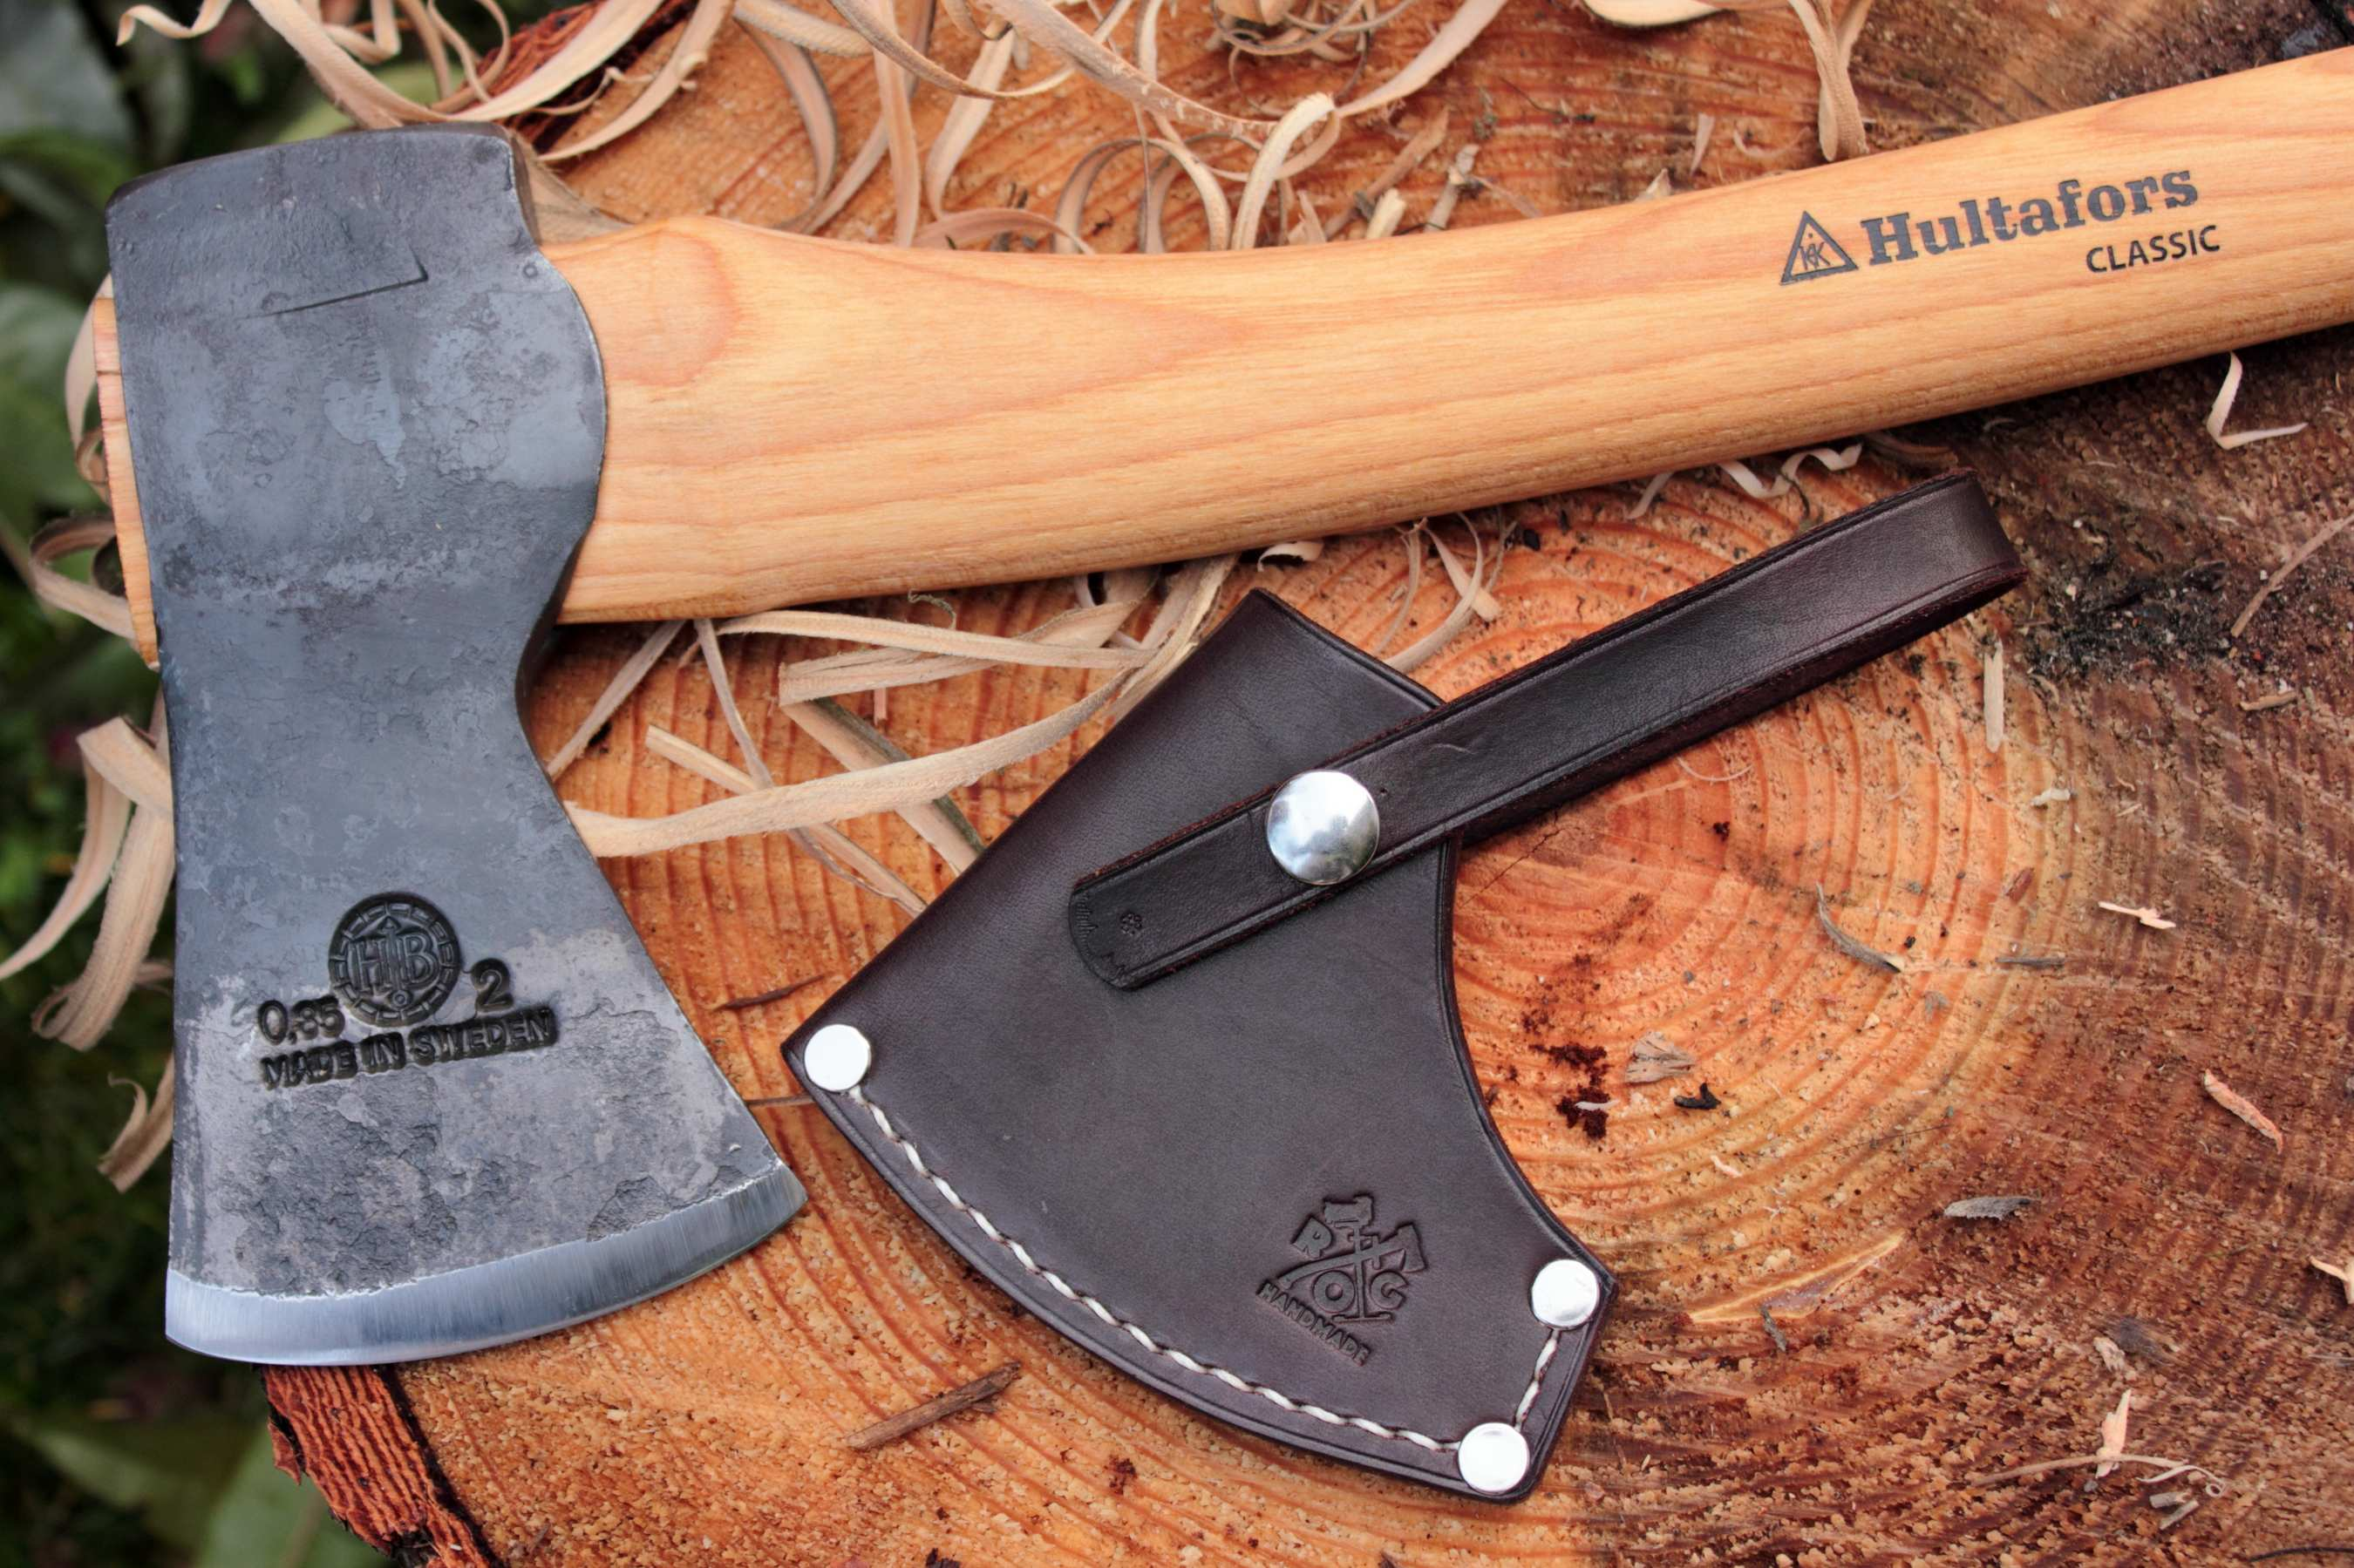 hultafors classic hunting axe review